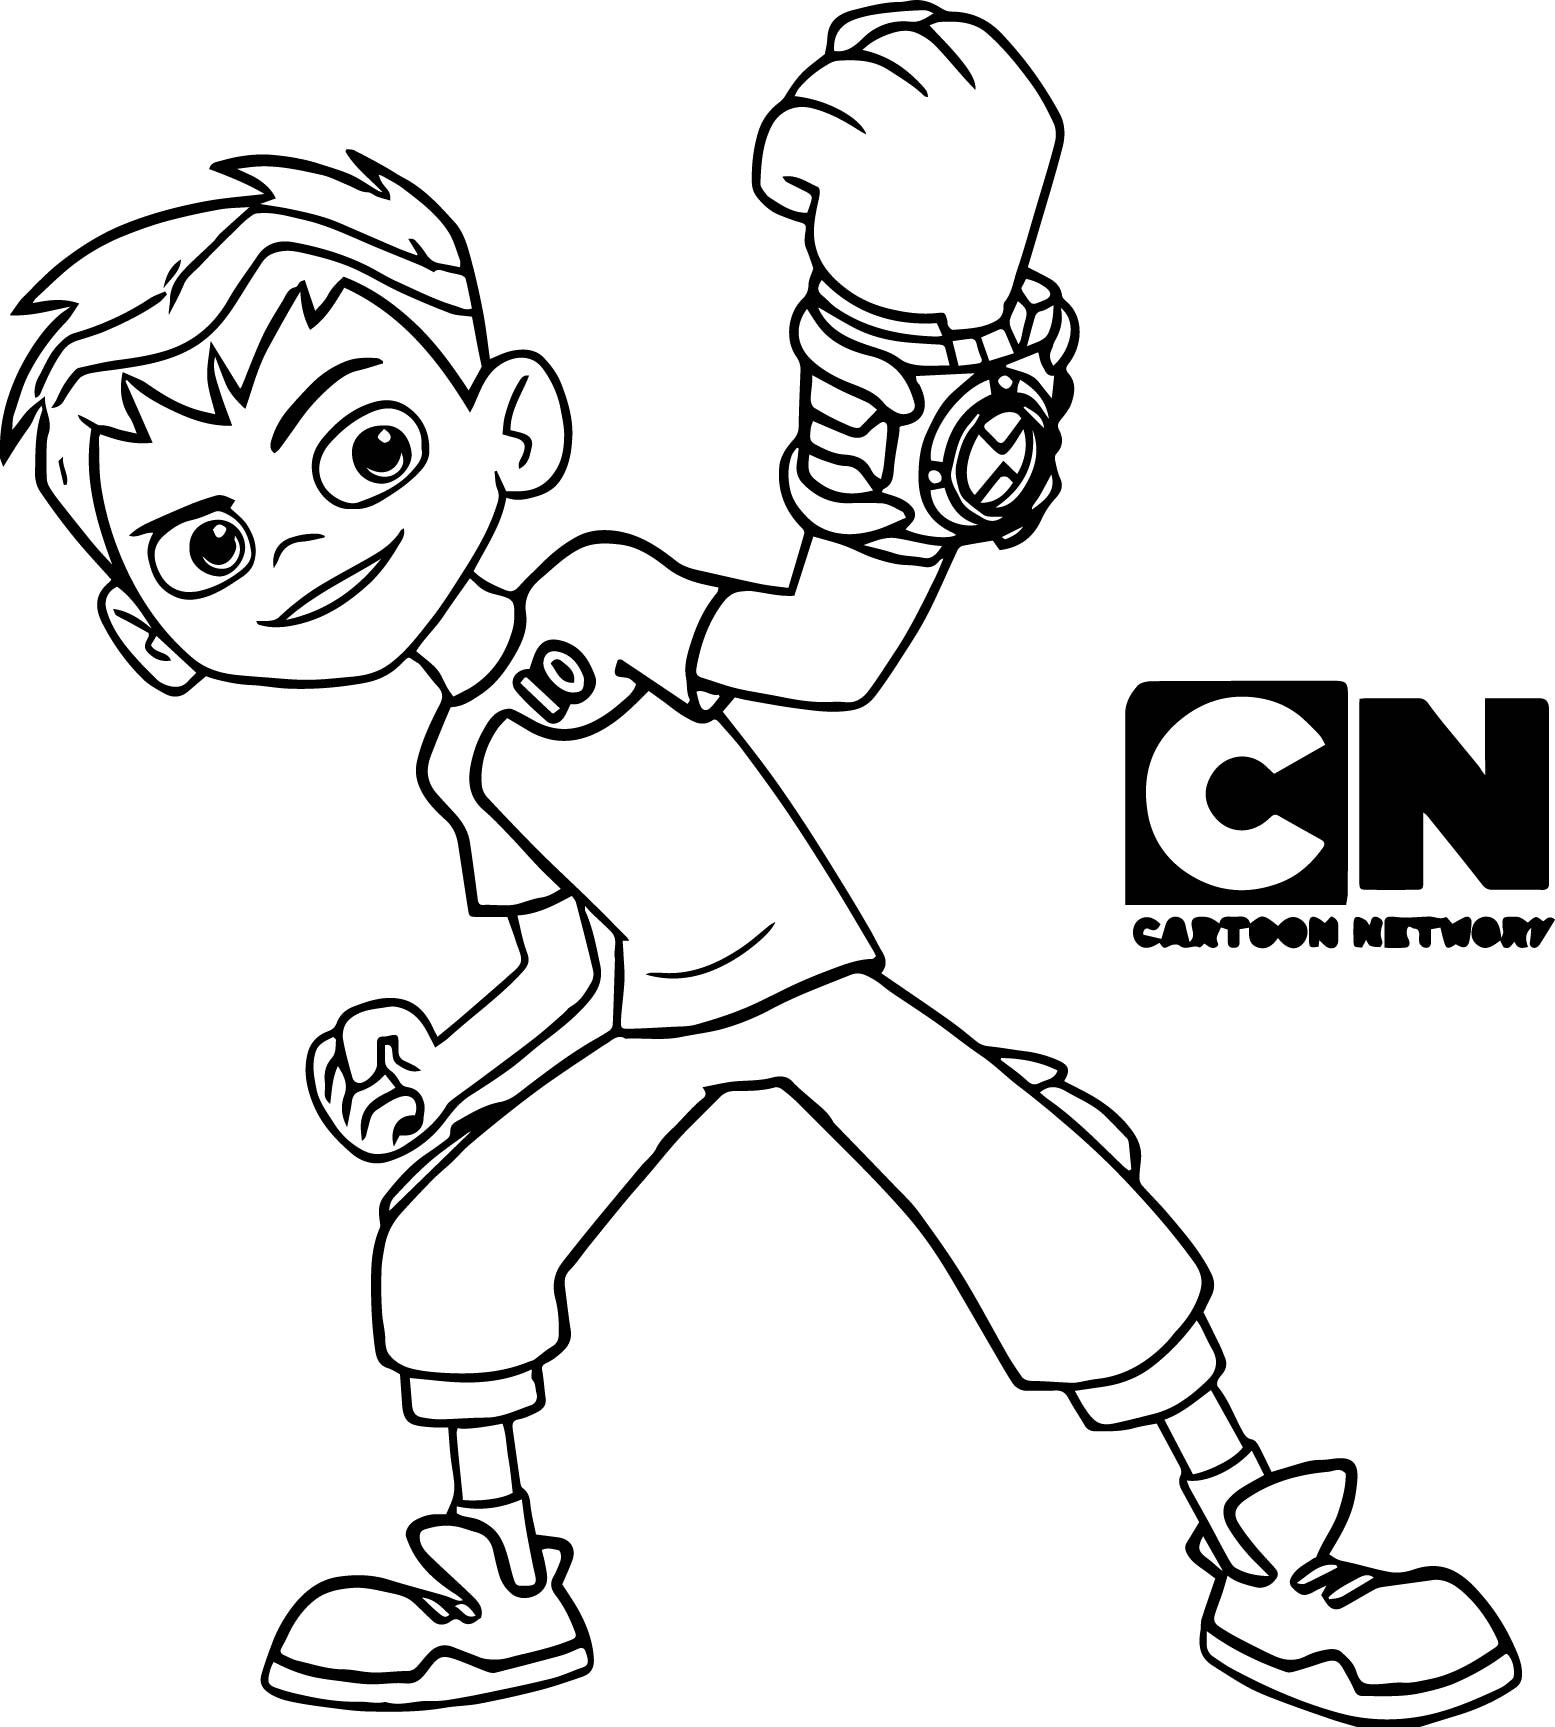 ben 10 coloring images ben 10 coloring pages jetray free printable coloring pages coloring ben images 10